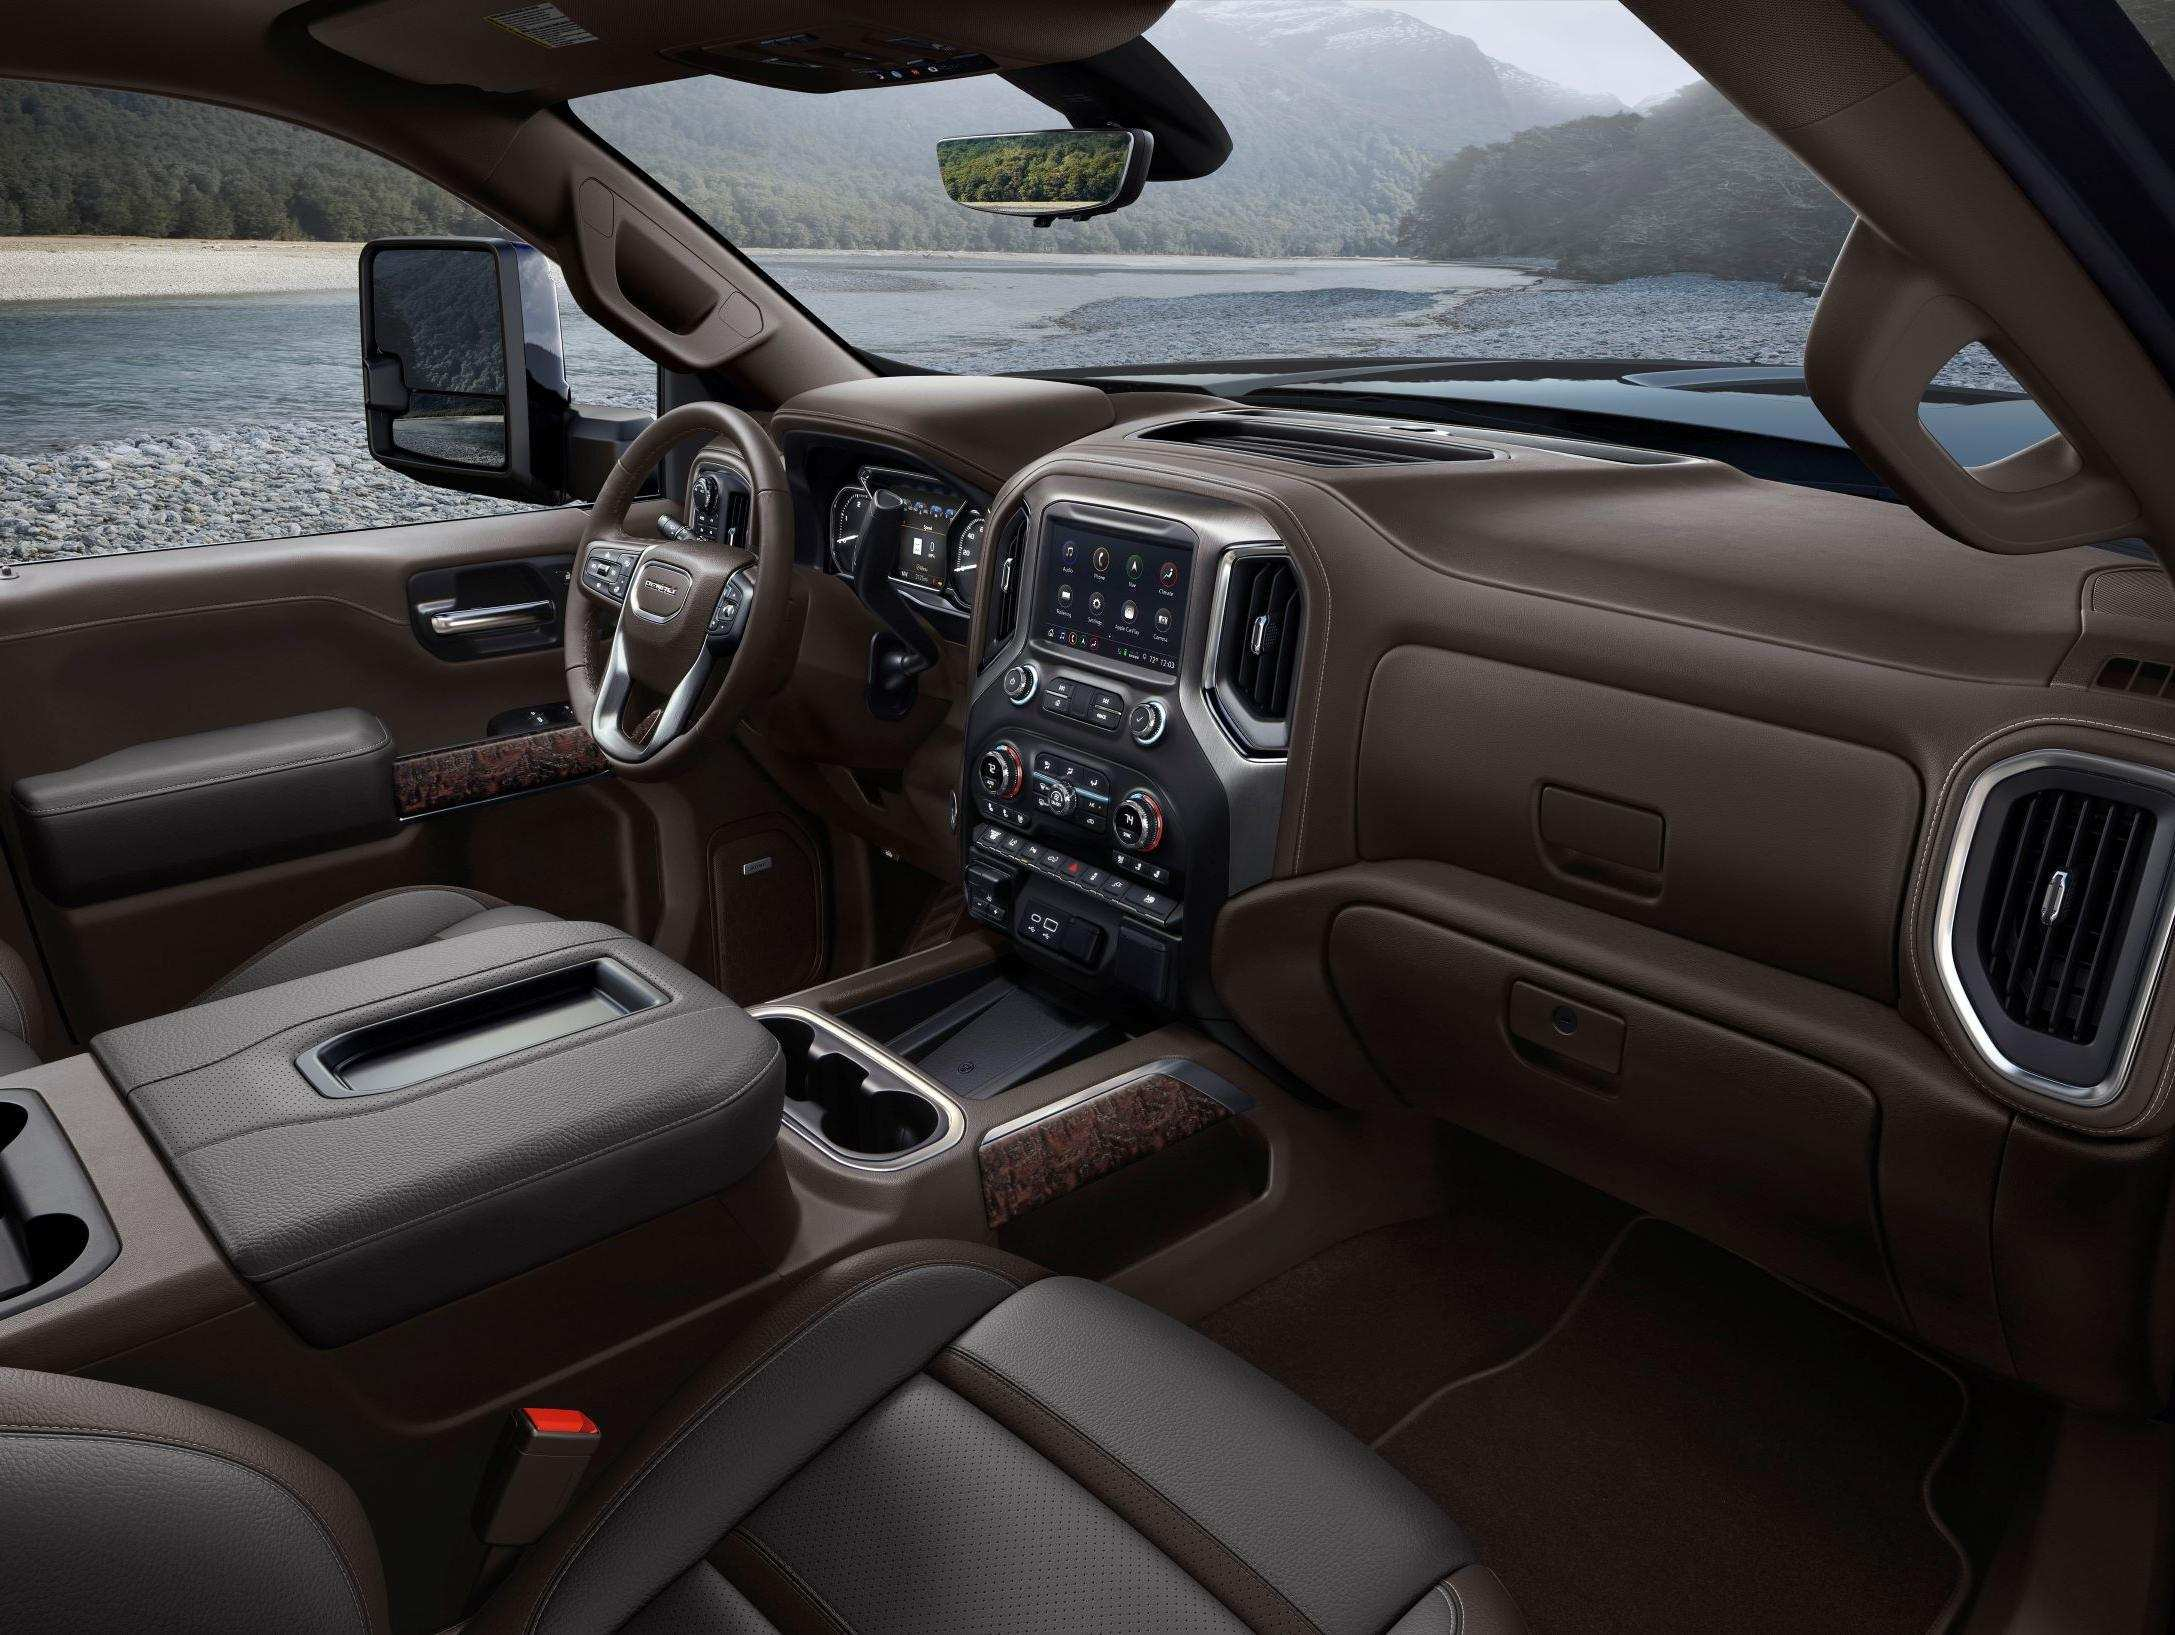 30 Best 2020 Gmc Interior Price And Release Date